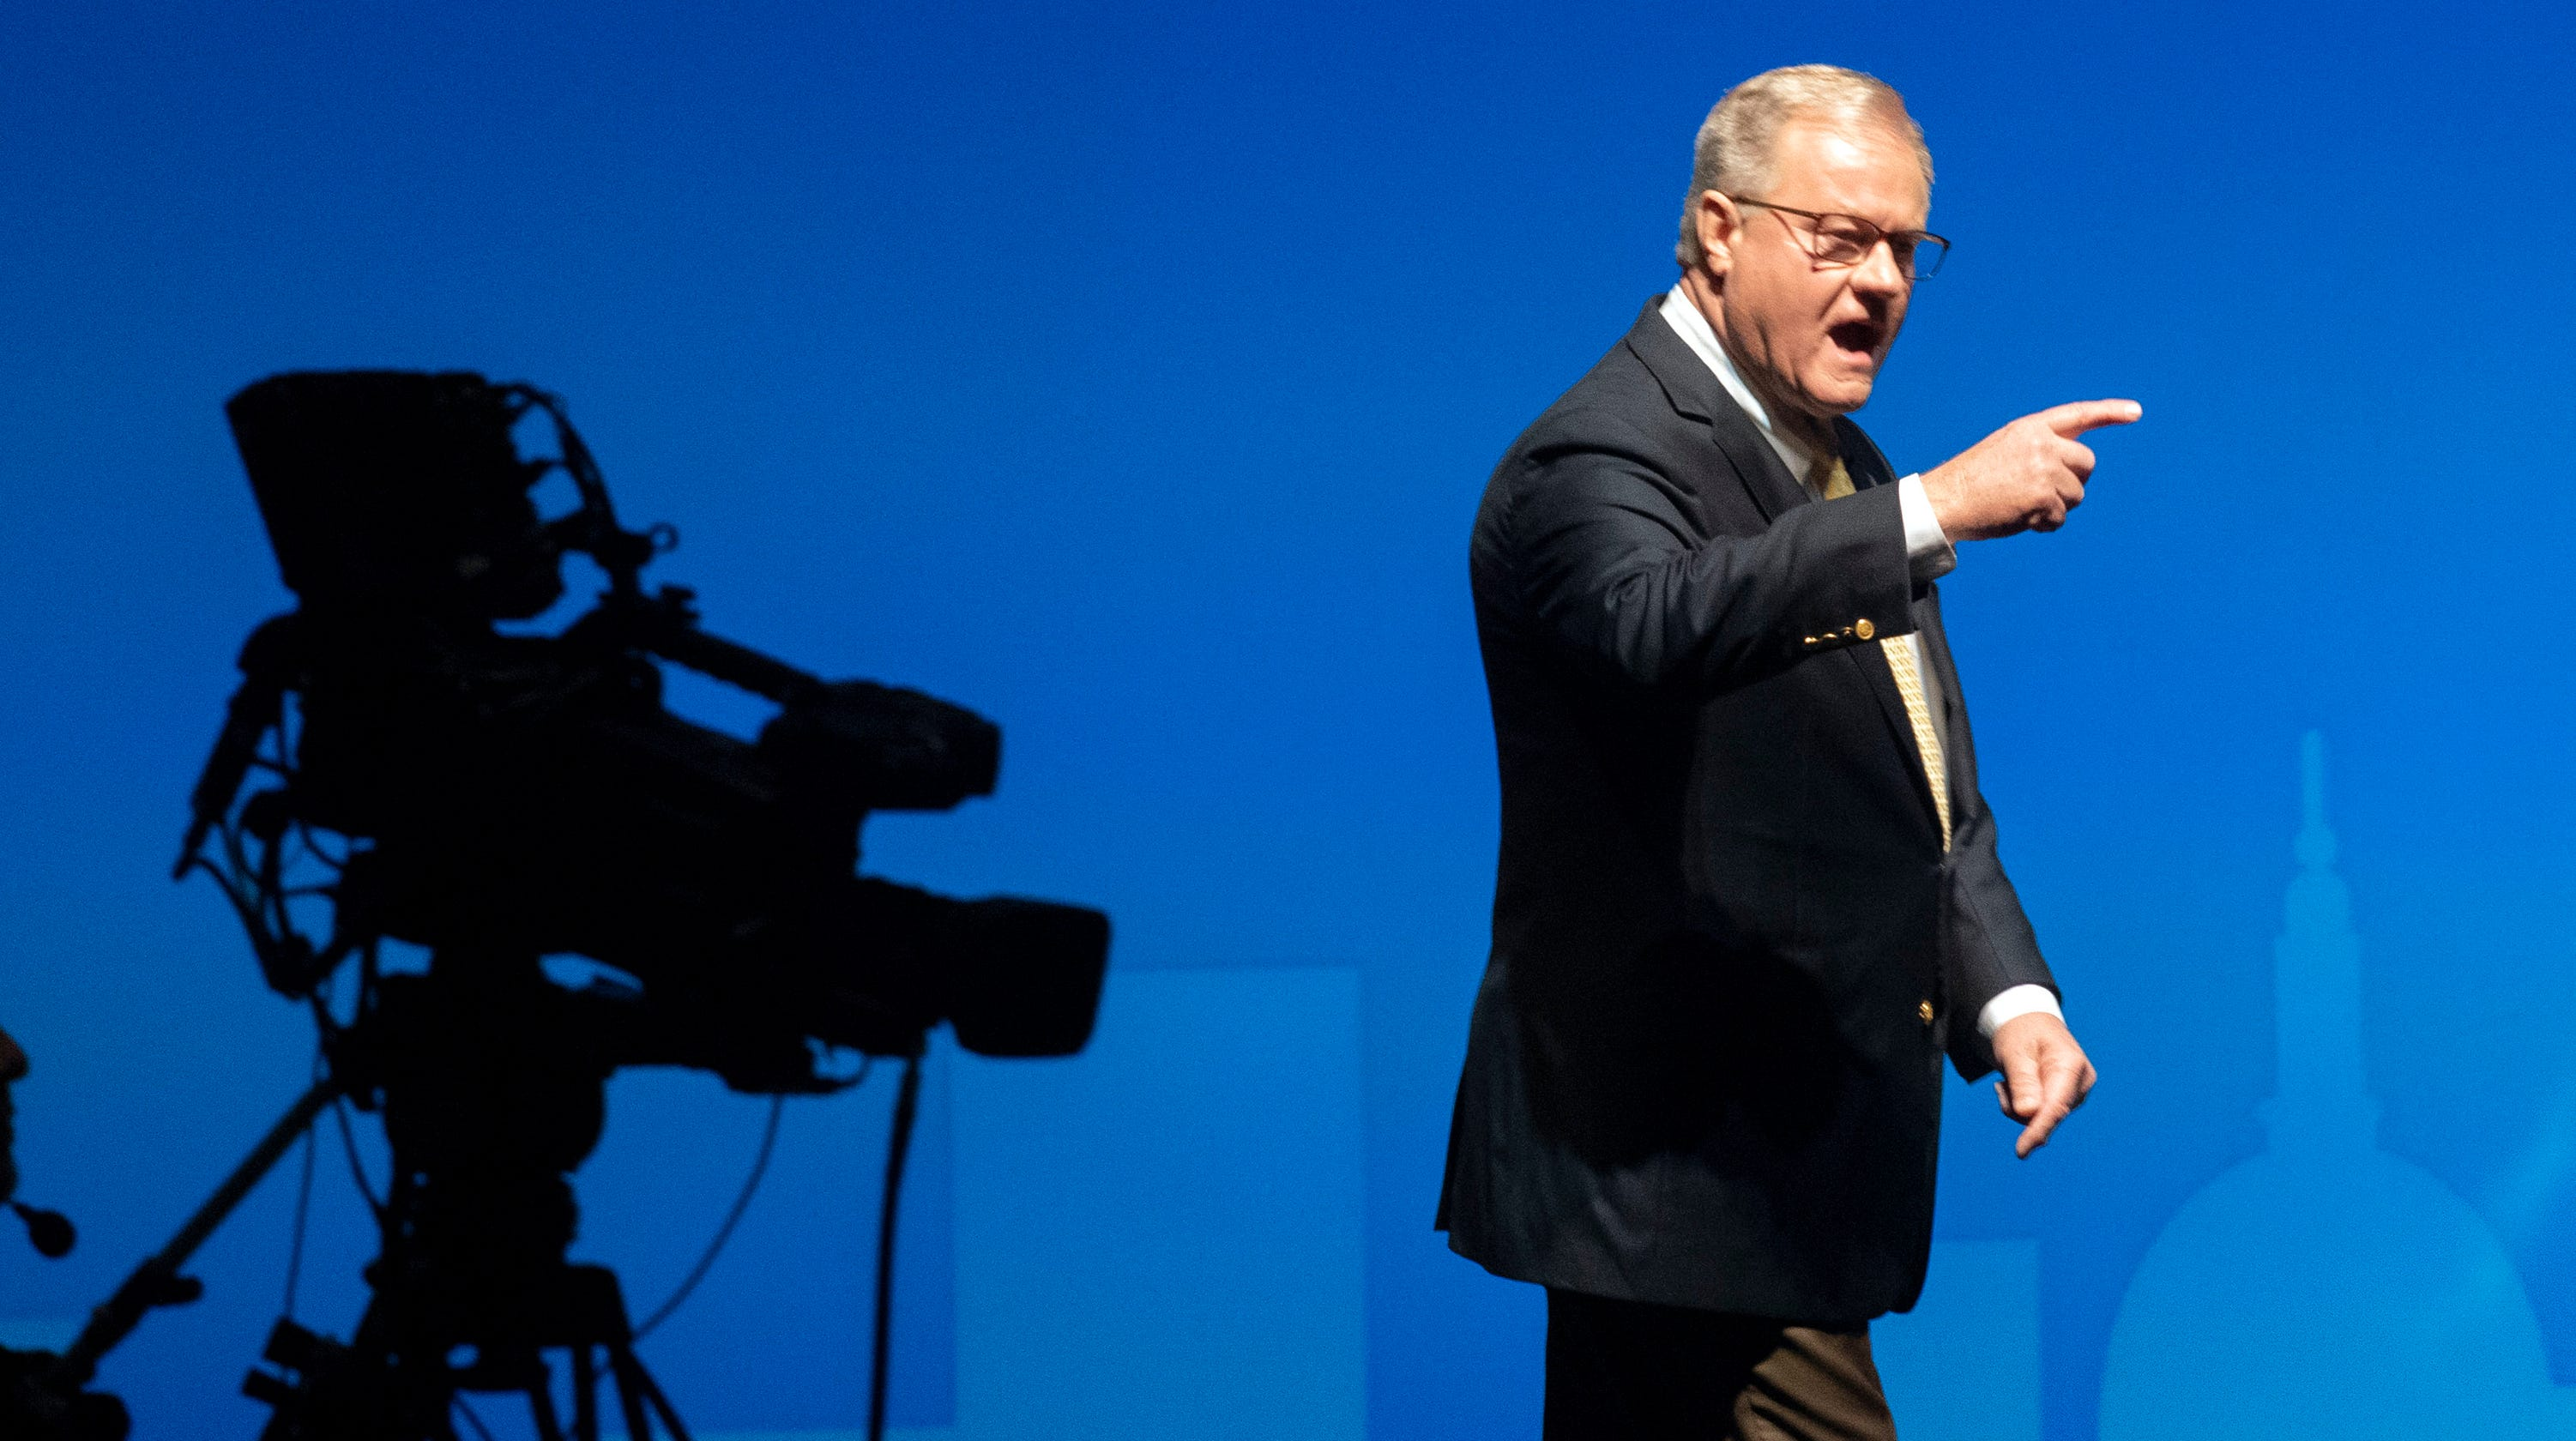 Pa  election: Scott Wagner says he'll 'stomp all over' Gov